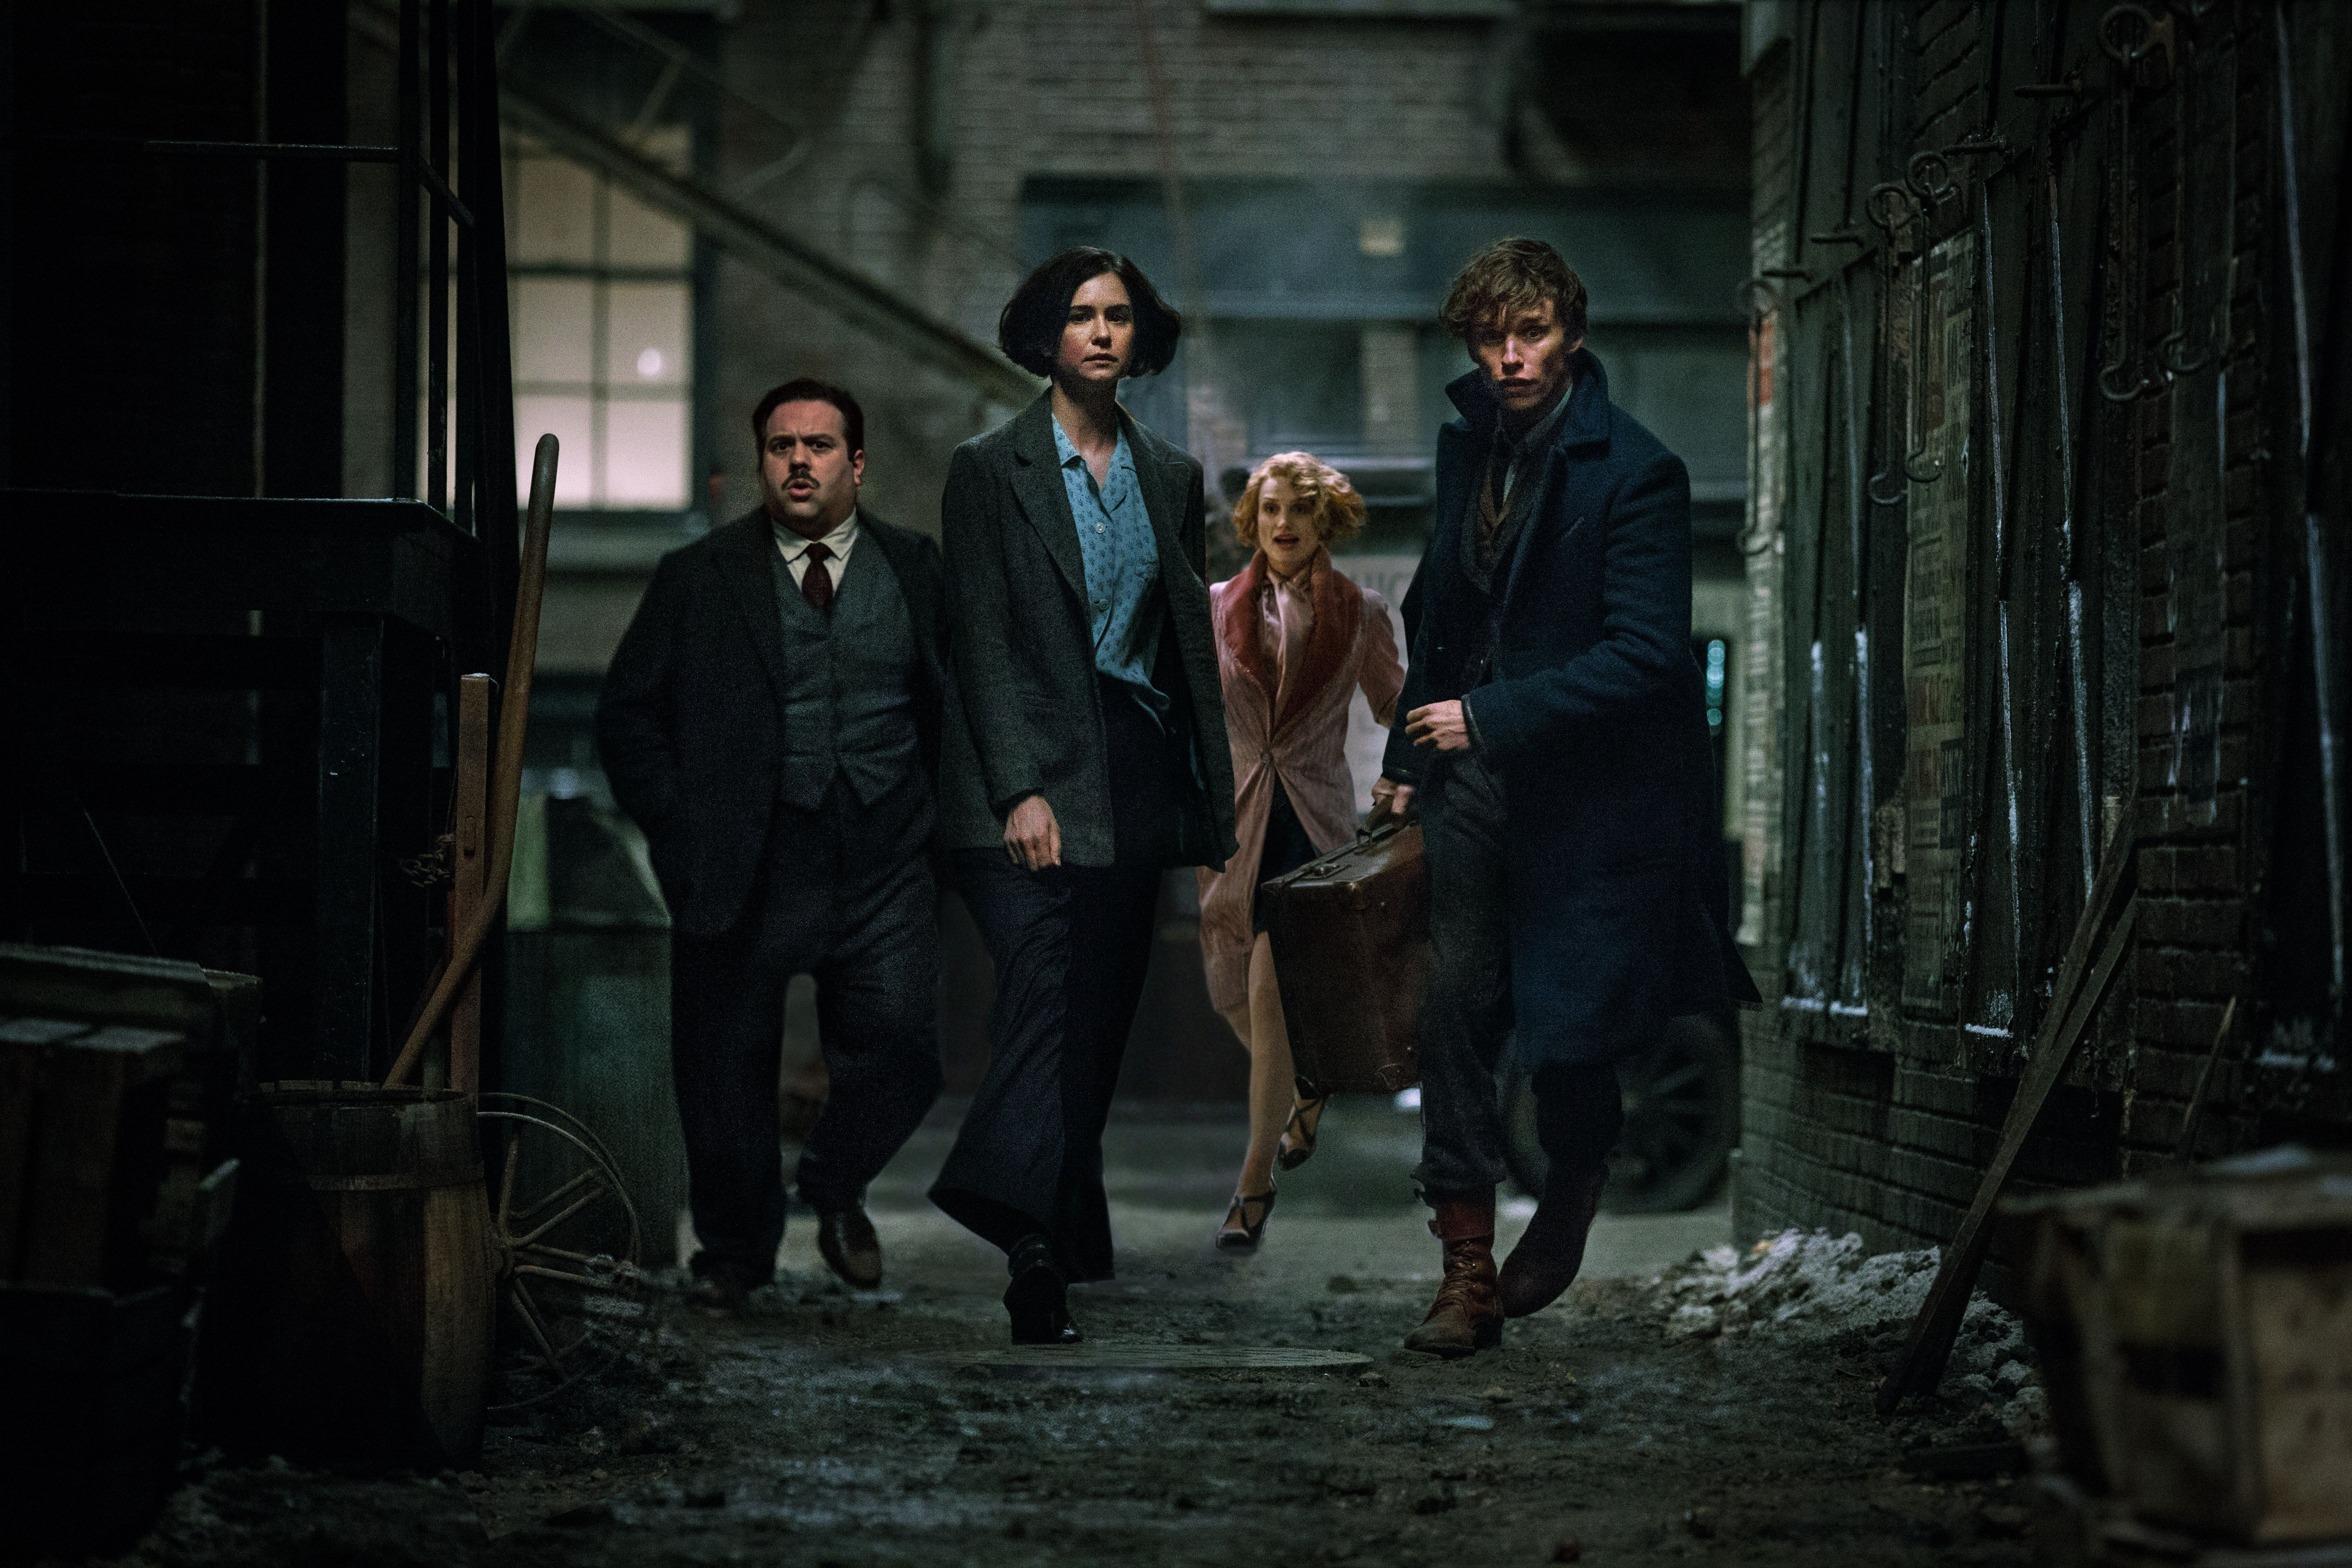 0be593f2a6 Fantastic Beasts Fan Reviews: What Did You Think? | Collider